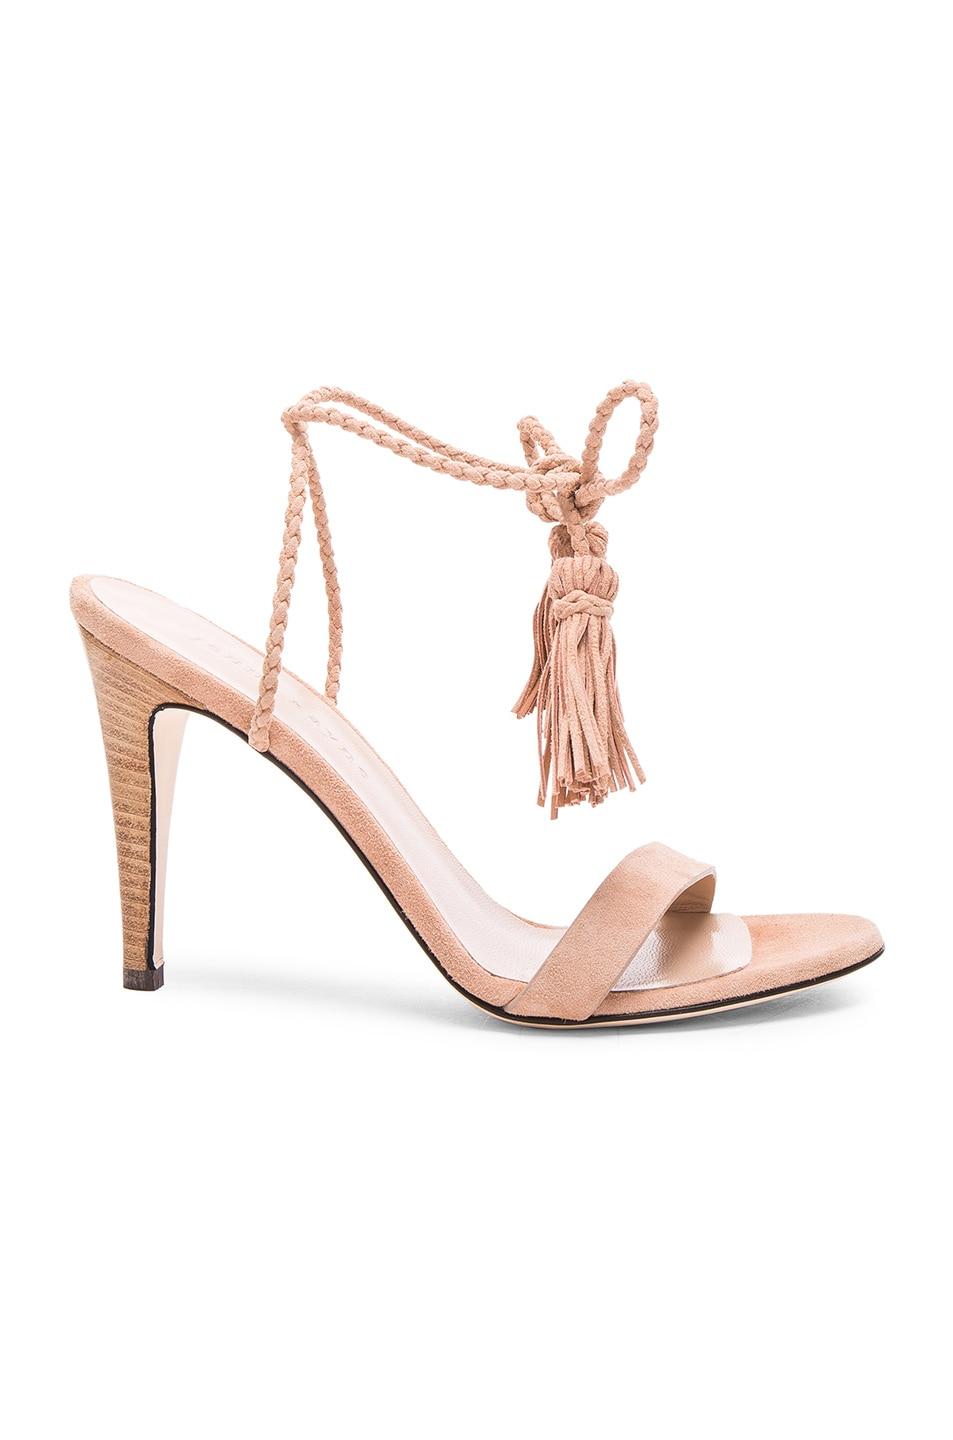 Image 1 of Jenni Kayne Suede Tassel Heels in Natural